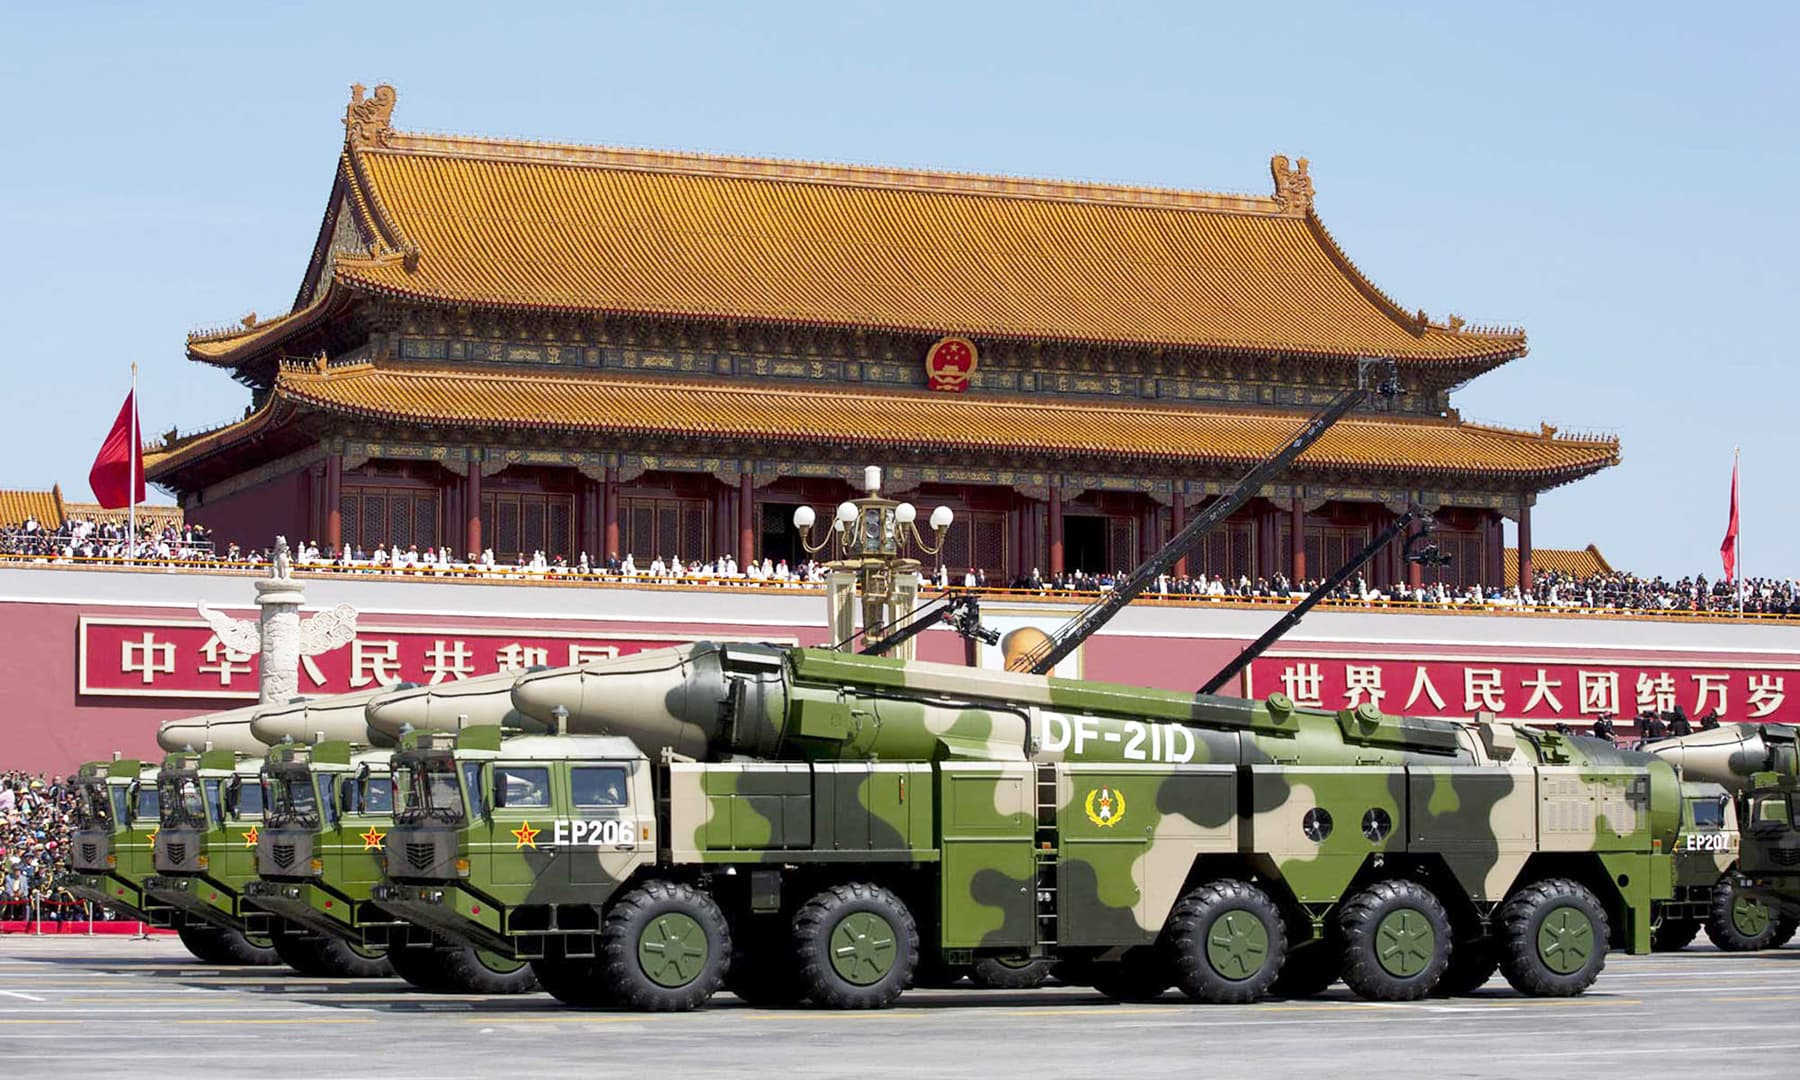 Chinese military vehicles carrying DF-21D anti-ship ballistic missiles, known as carrier killers, drive past Tiananmen Gate in Beijing during a military parade in 2015. — Reuters